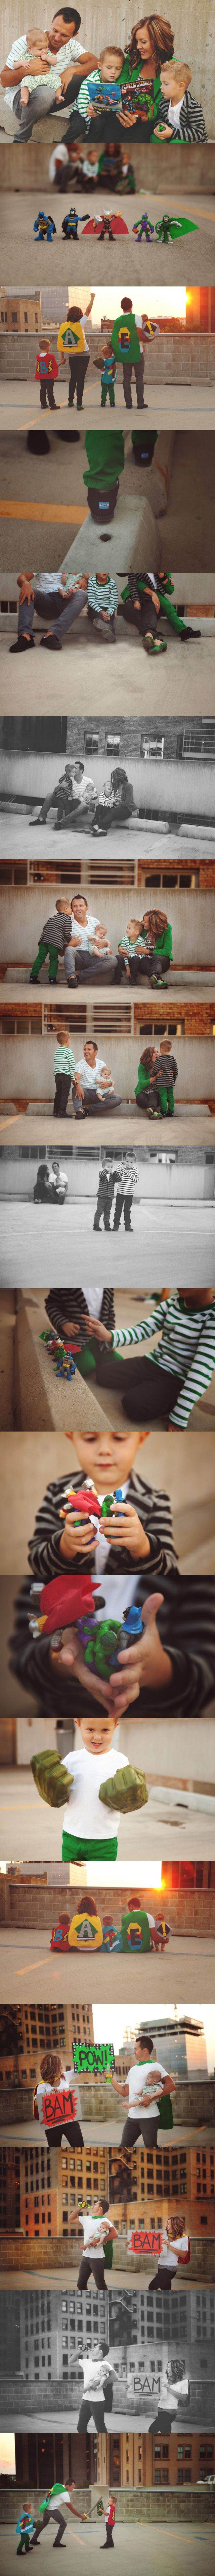 Wish Photography|Family Photography Inspiration « Evoking You|Inspiration for your photography